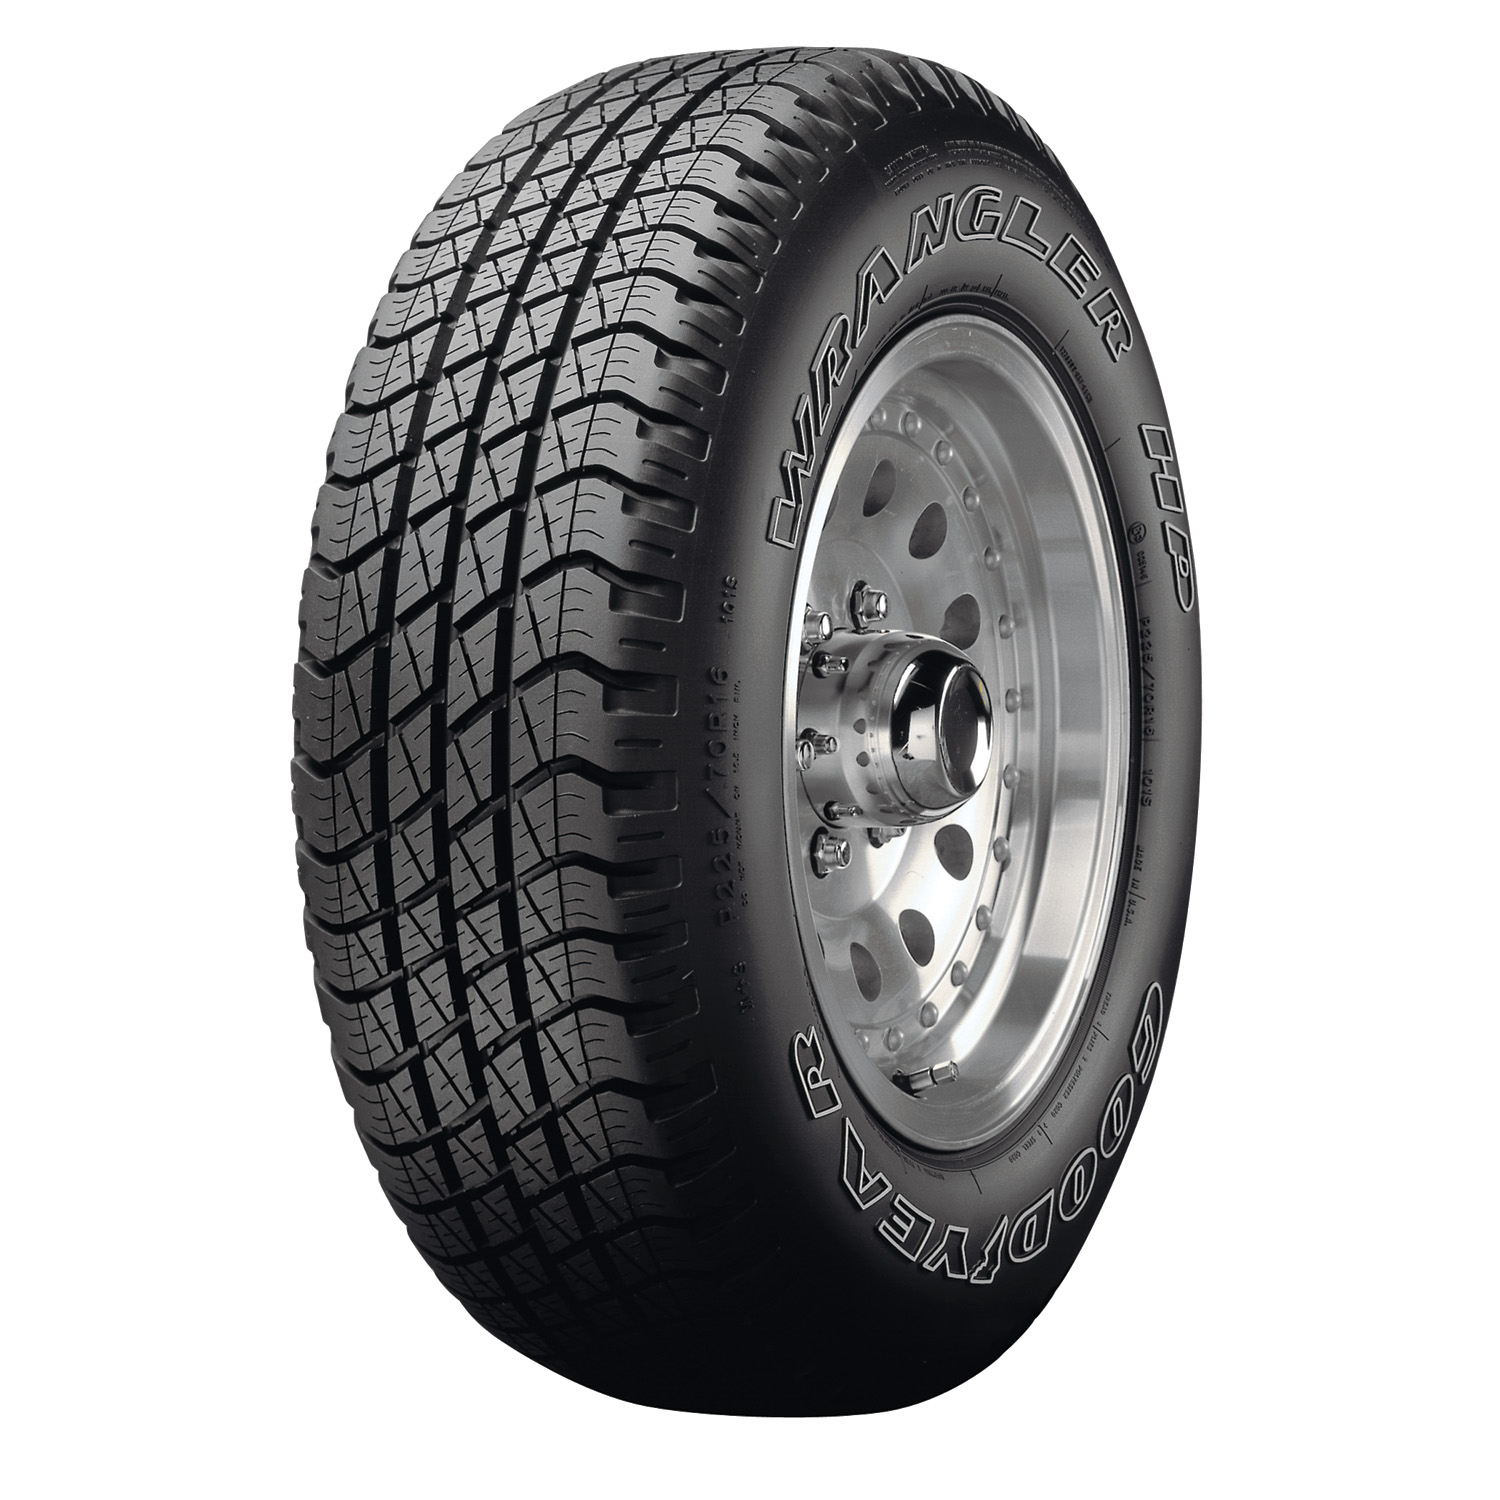 Goodyear  Wrangler HP - P265/70R17 113S BSW - All Season Tire